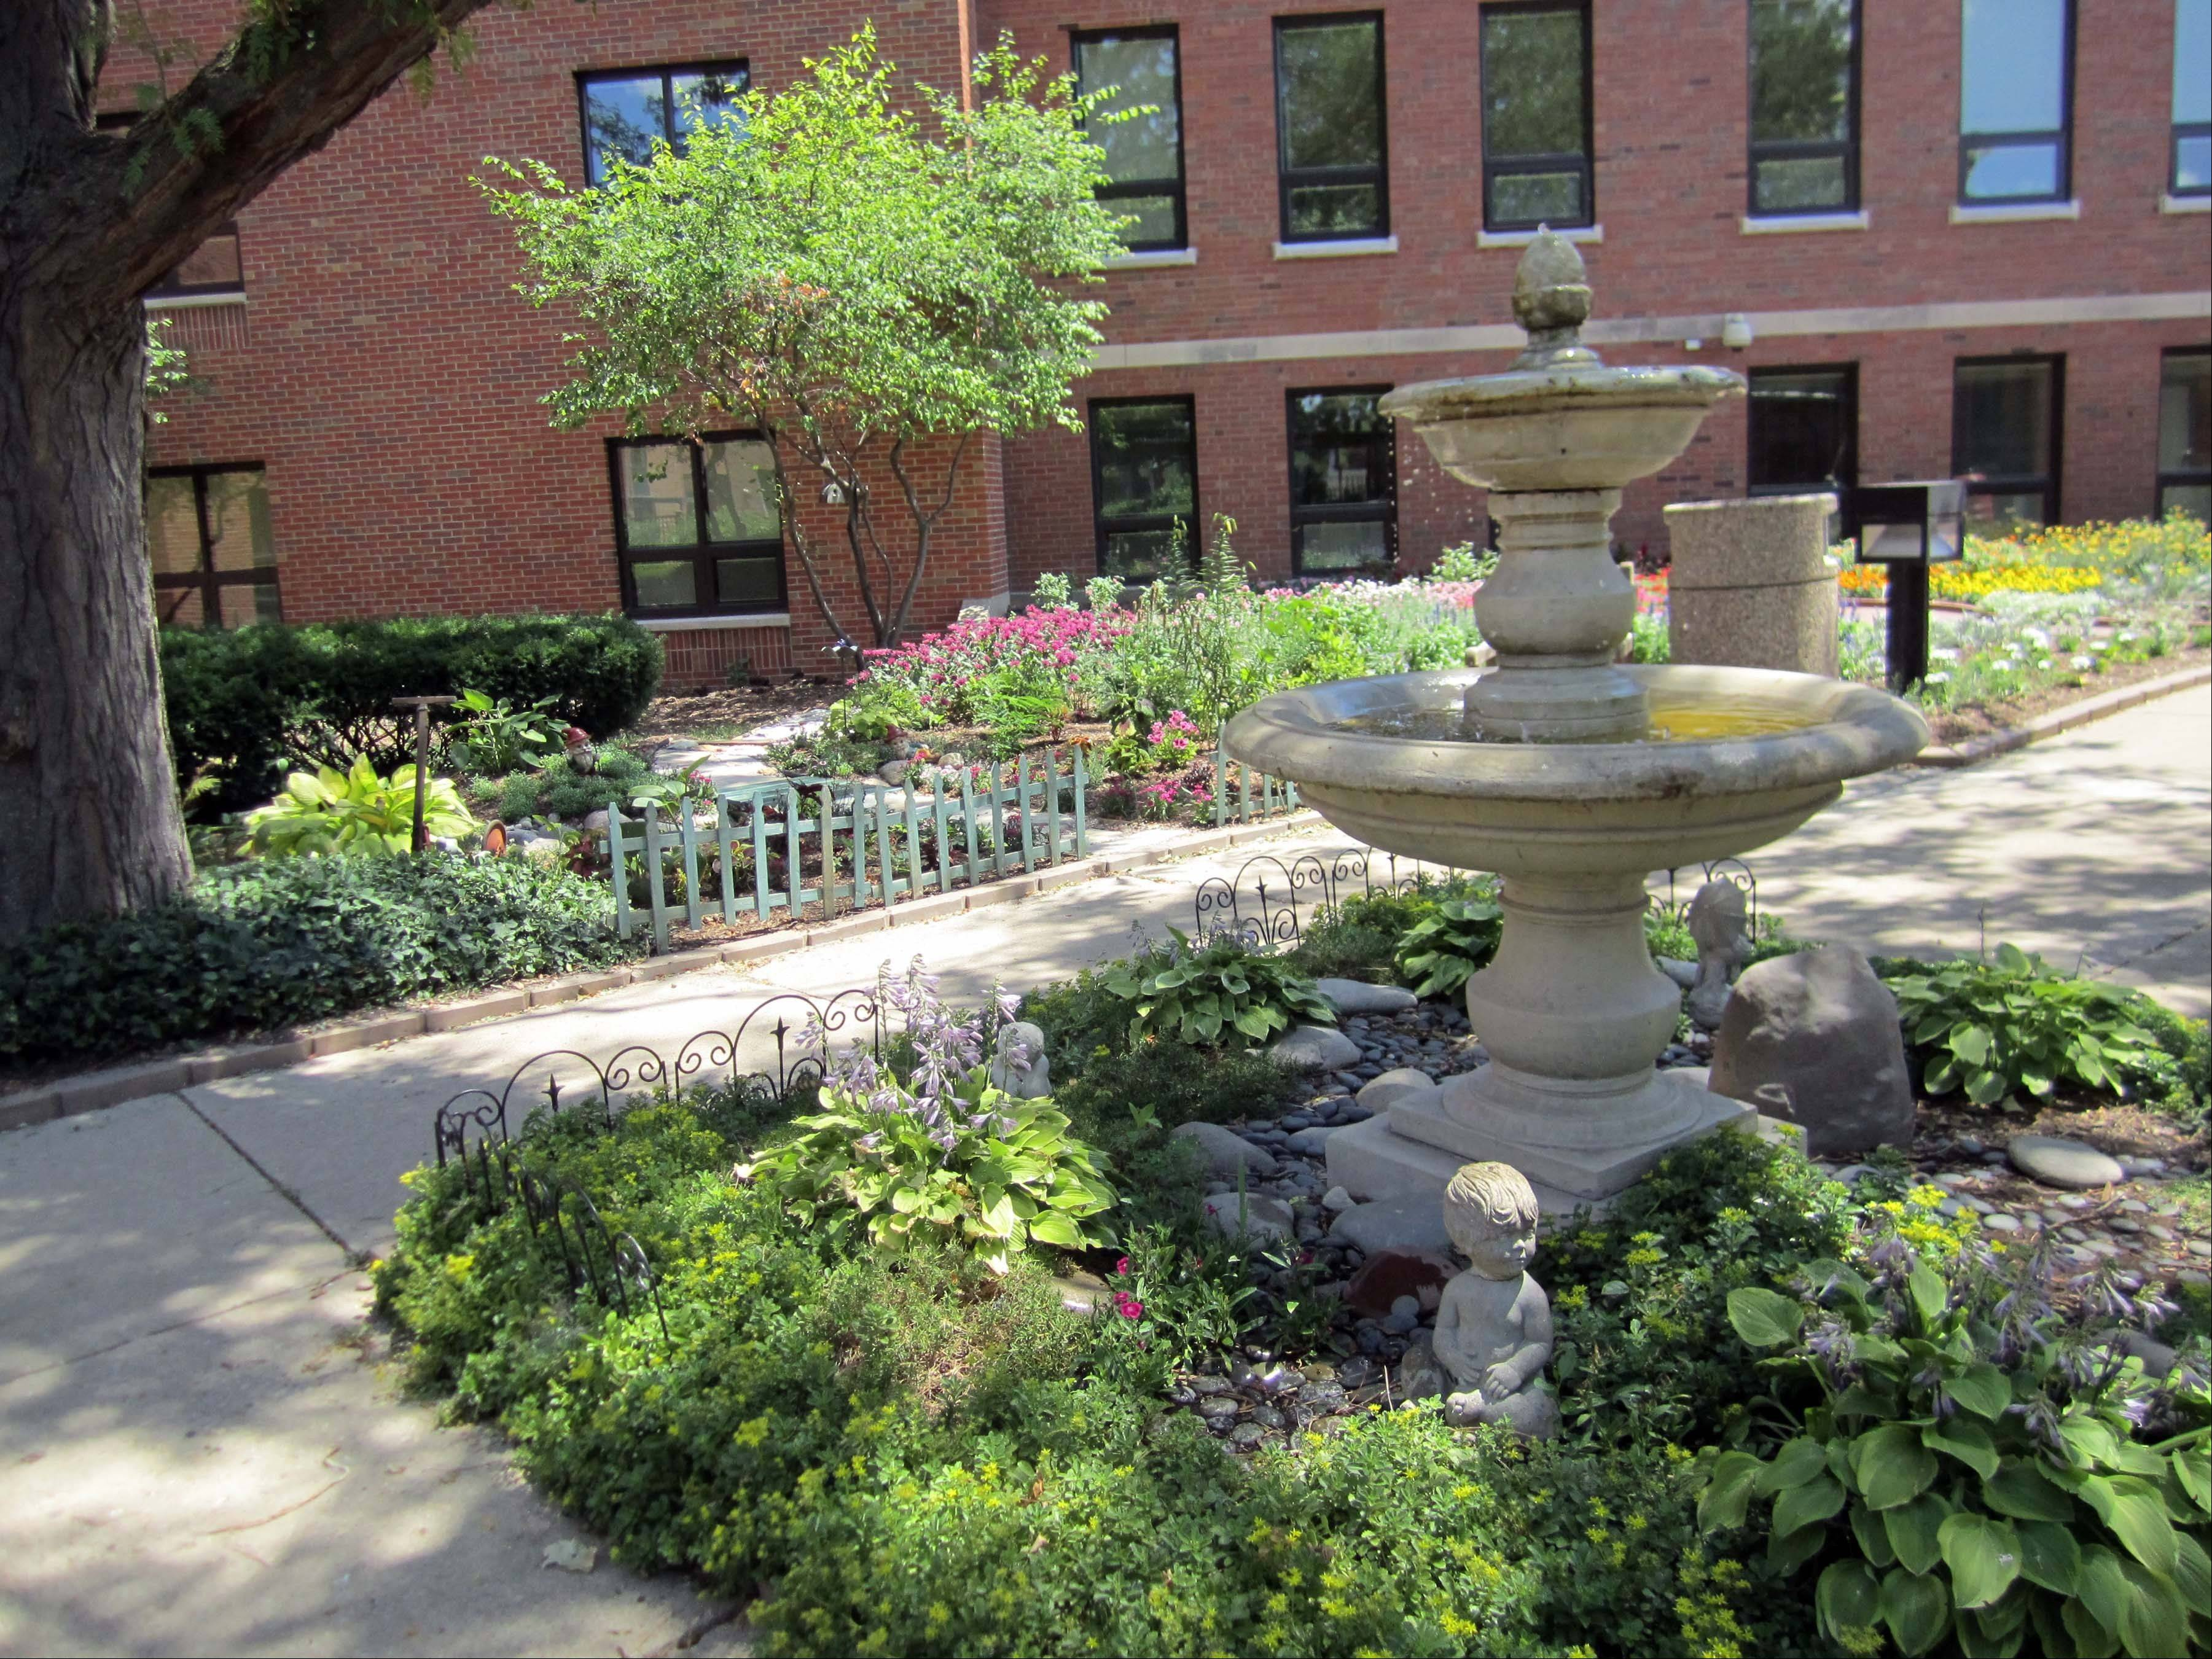 The DuPage County Convalescent Center will have a garden walk from 1 to 4 p.m. Sunday, July 22, to encourage the community to see residents' gardens.